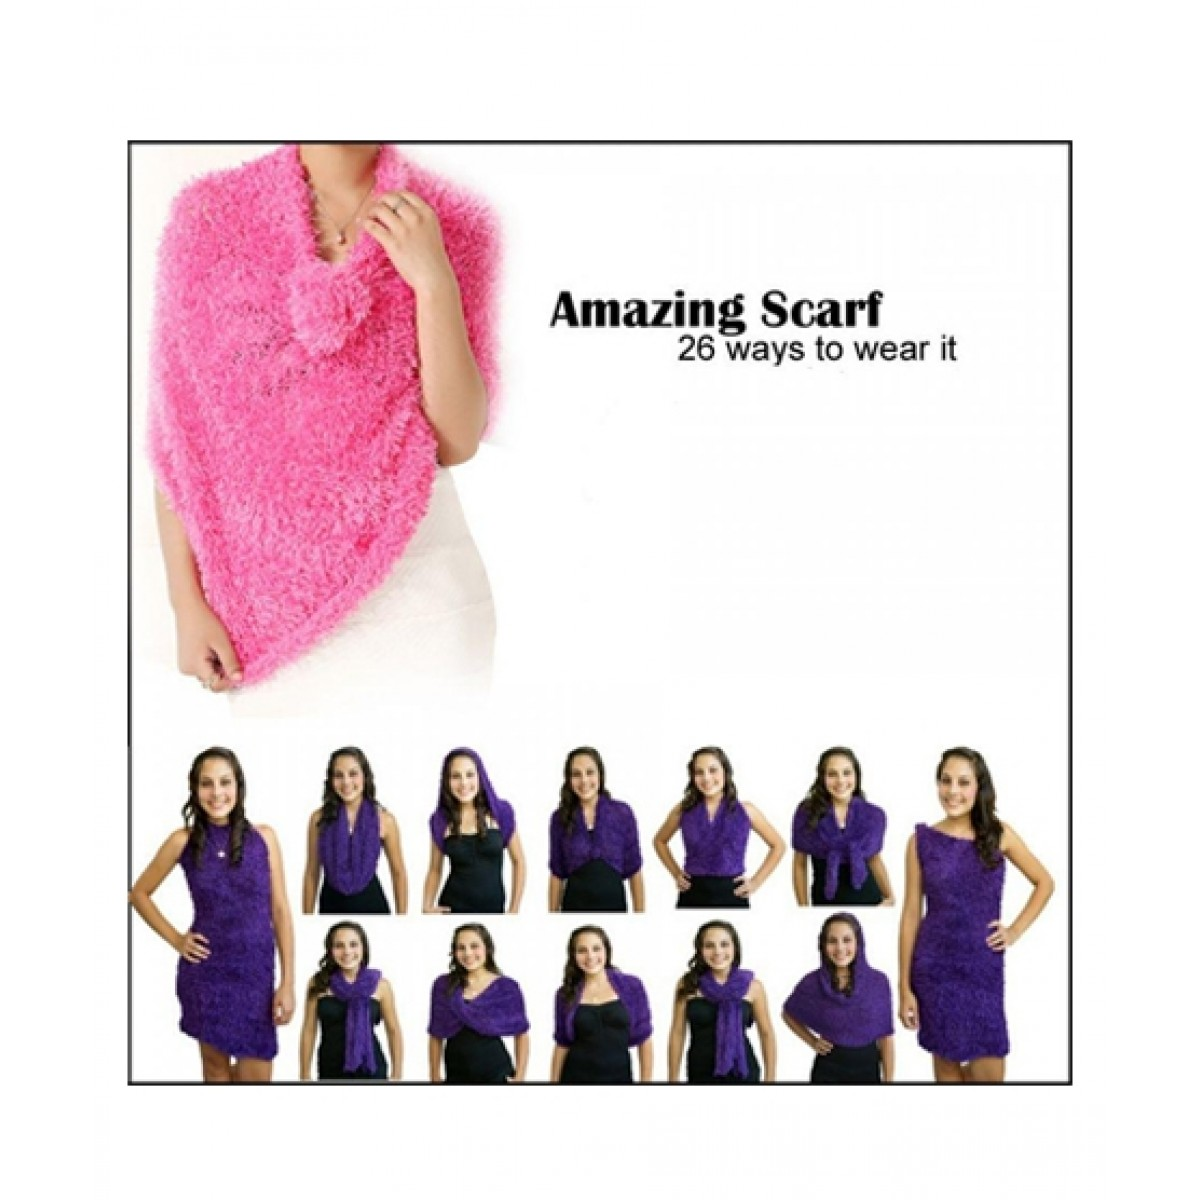 Attari Amazing Scarf 26 Ways To Wear (0118)